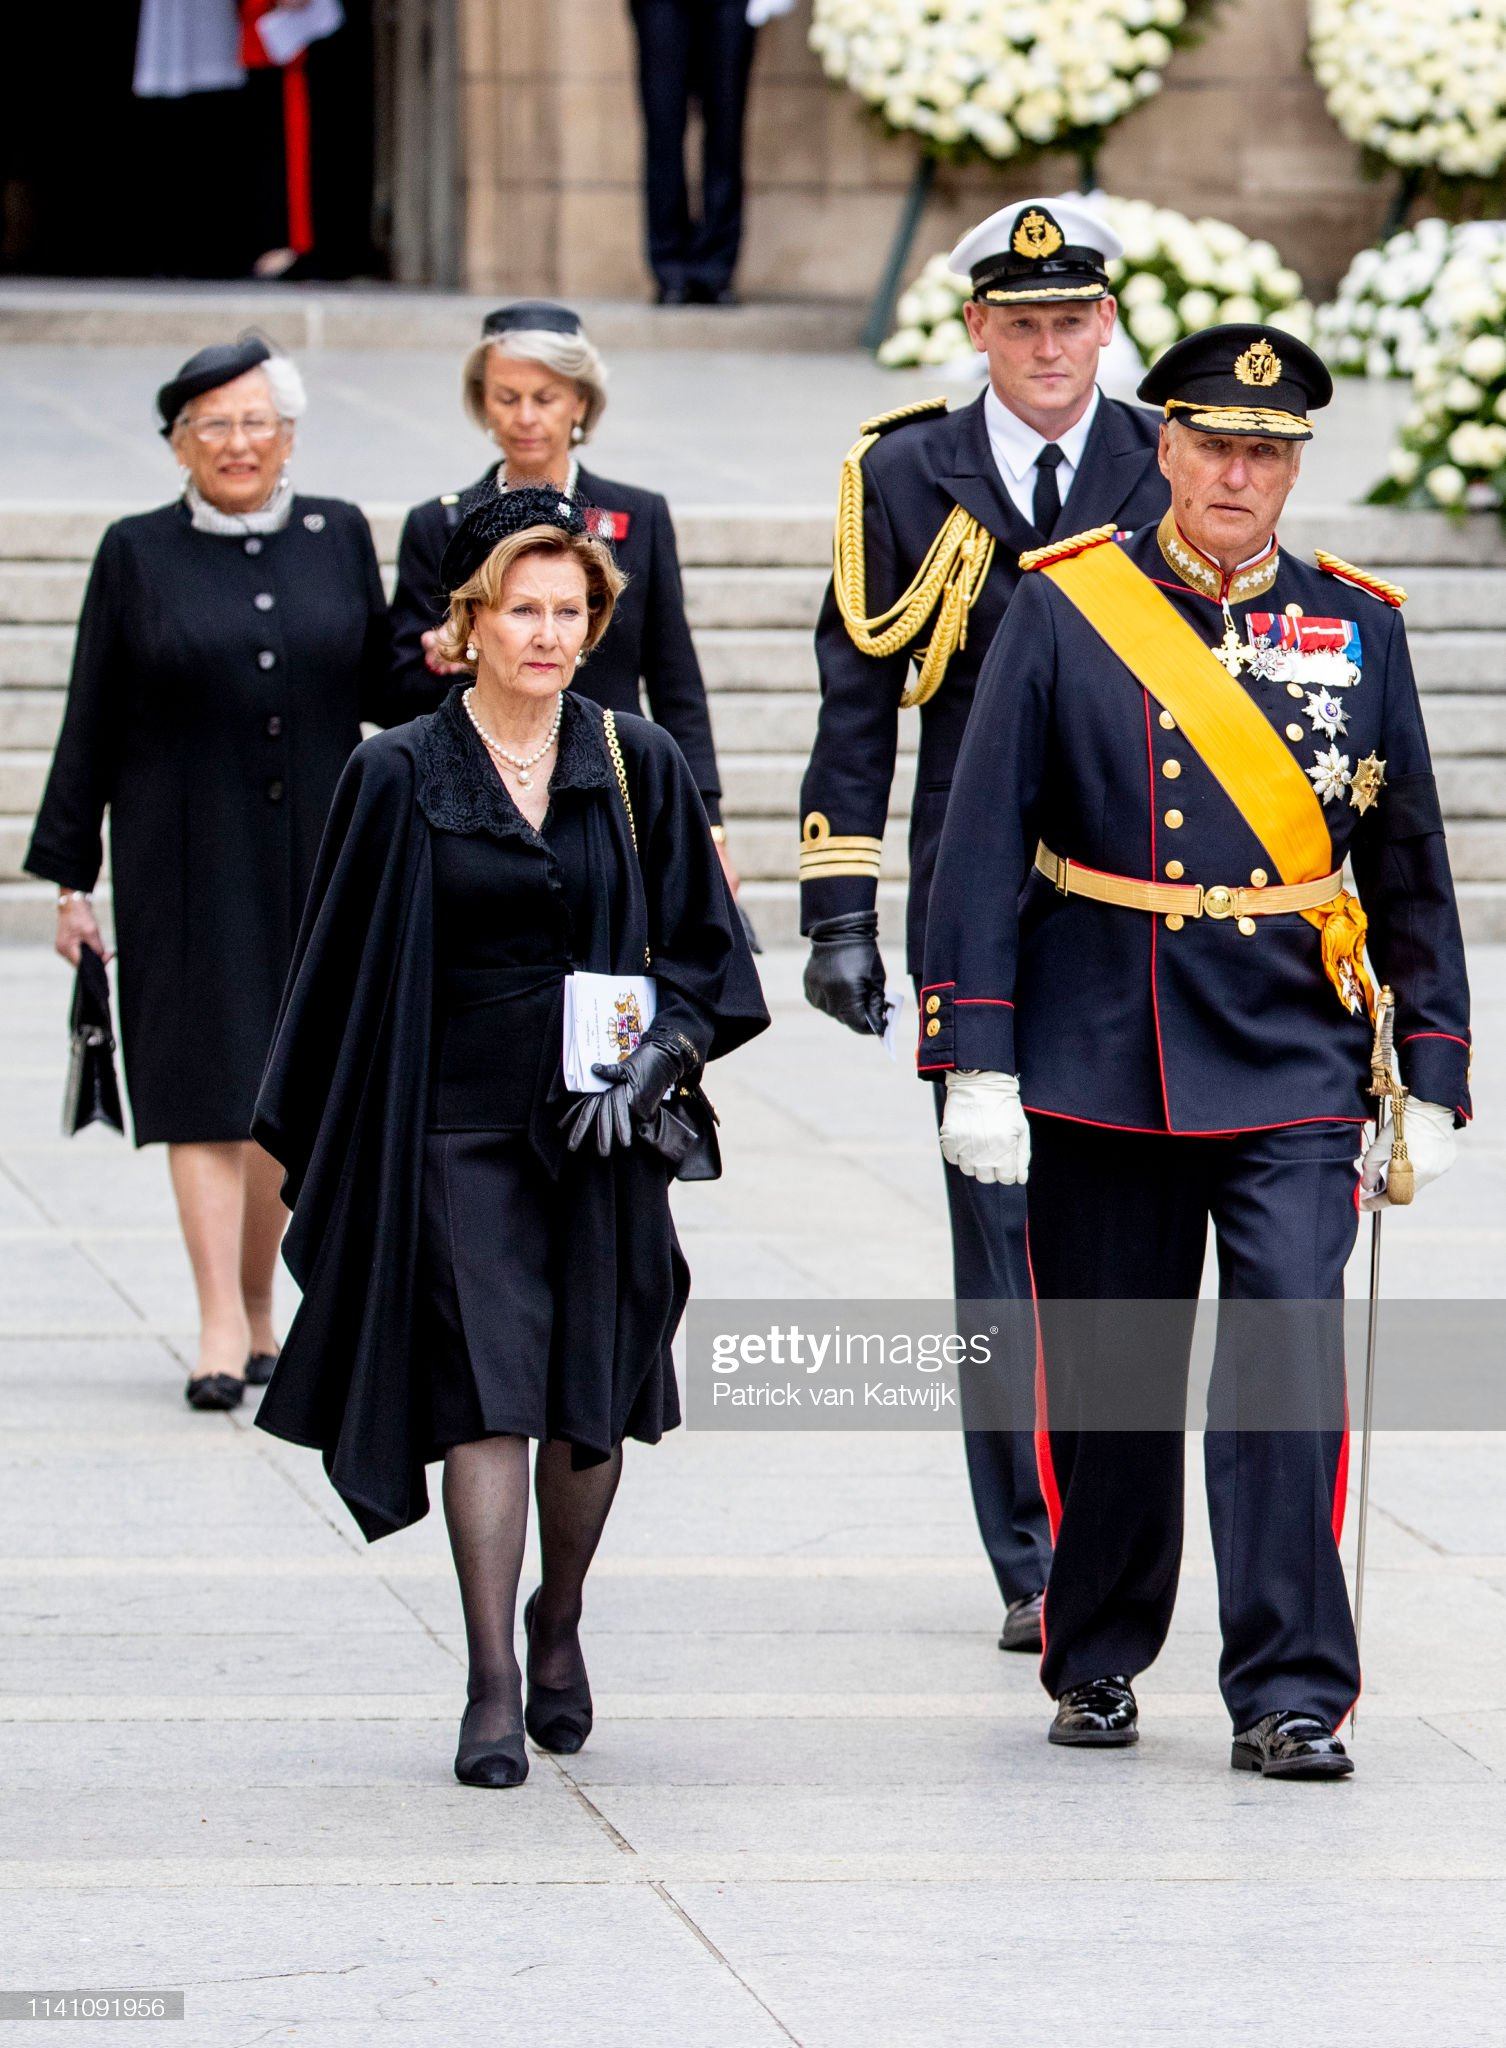 Похороны Великого Герцога Жана https://media.gettyimages.com/photos/king-harald-of-norway-and-queen-sonja-of-norway-attend-the-funeral-of-picture-id1141091956?s=2048x2048